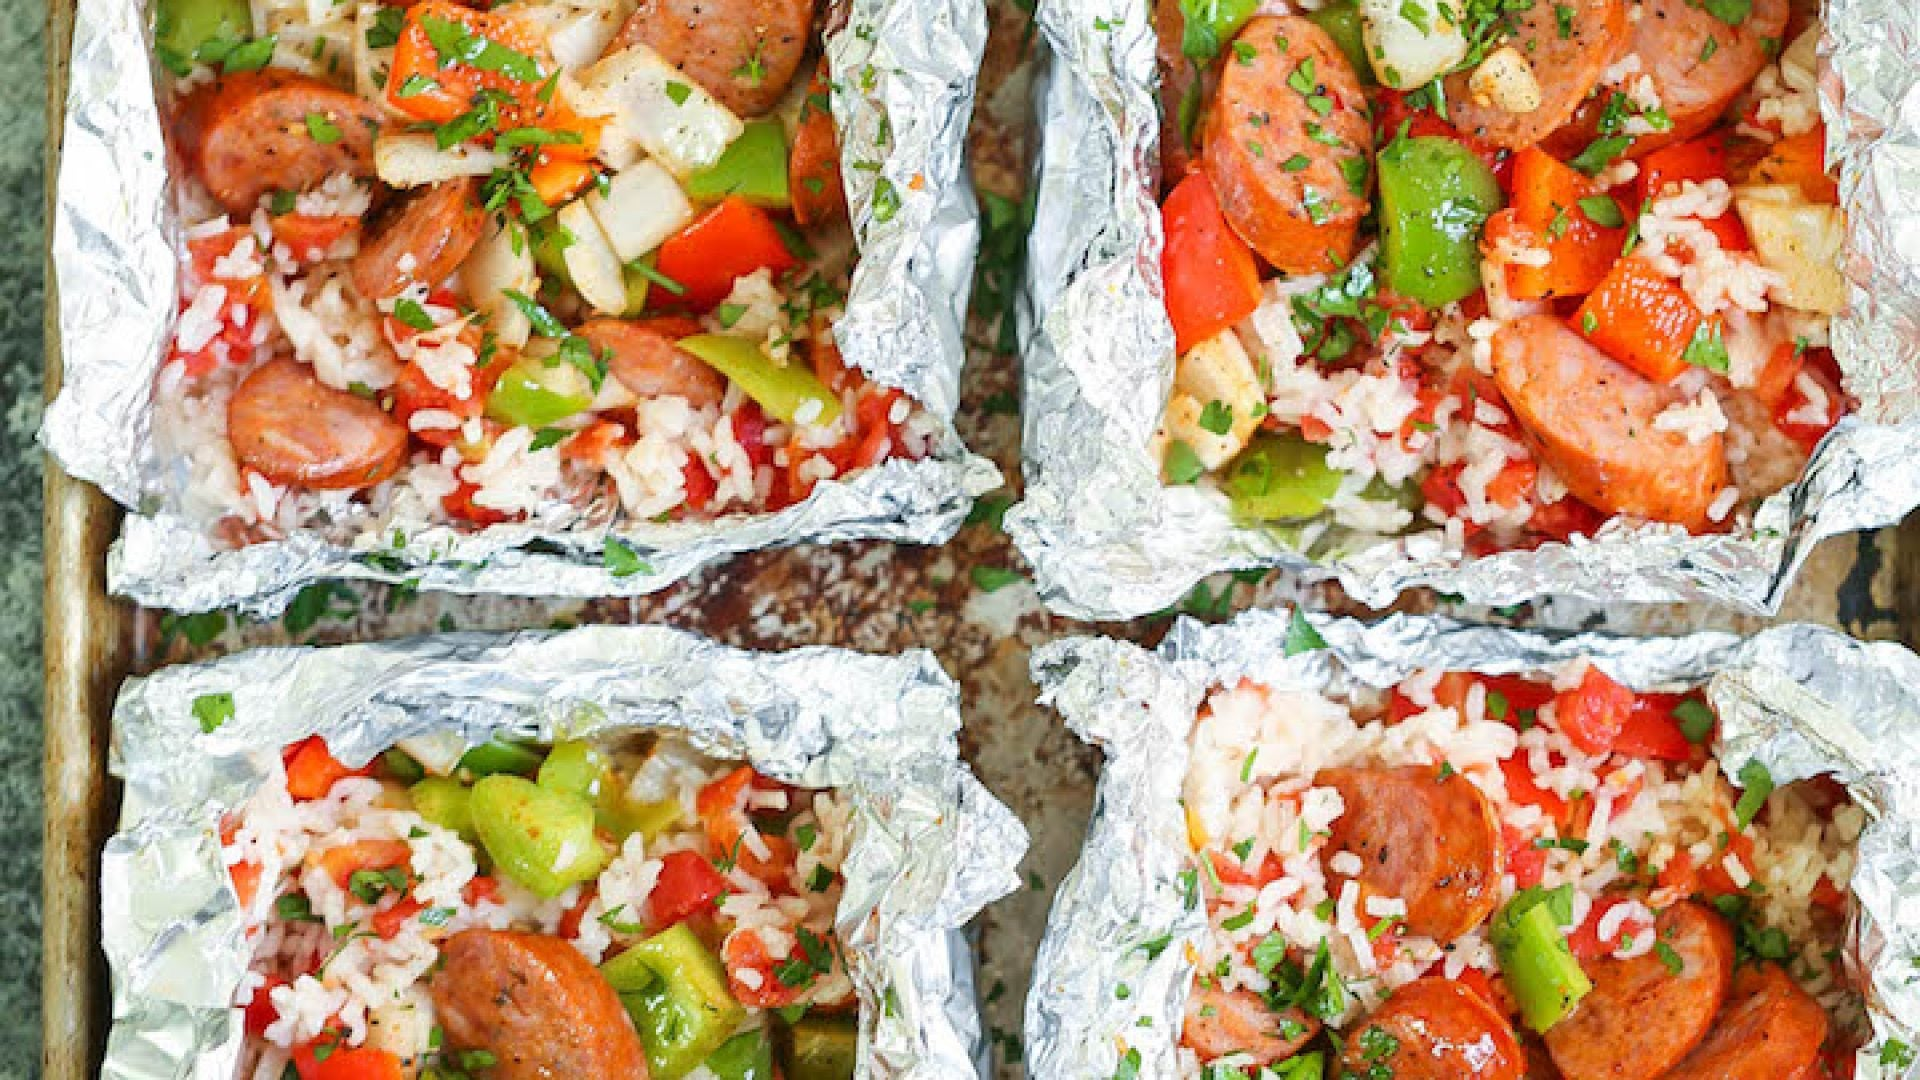 5 Easy Foil-Pack Dinners To Make When You Don't Really Feel Like Cooking